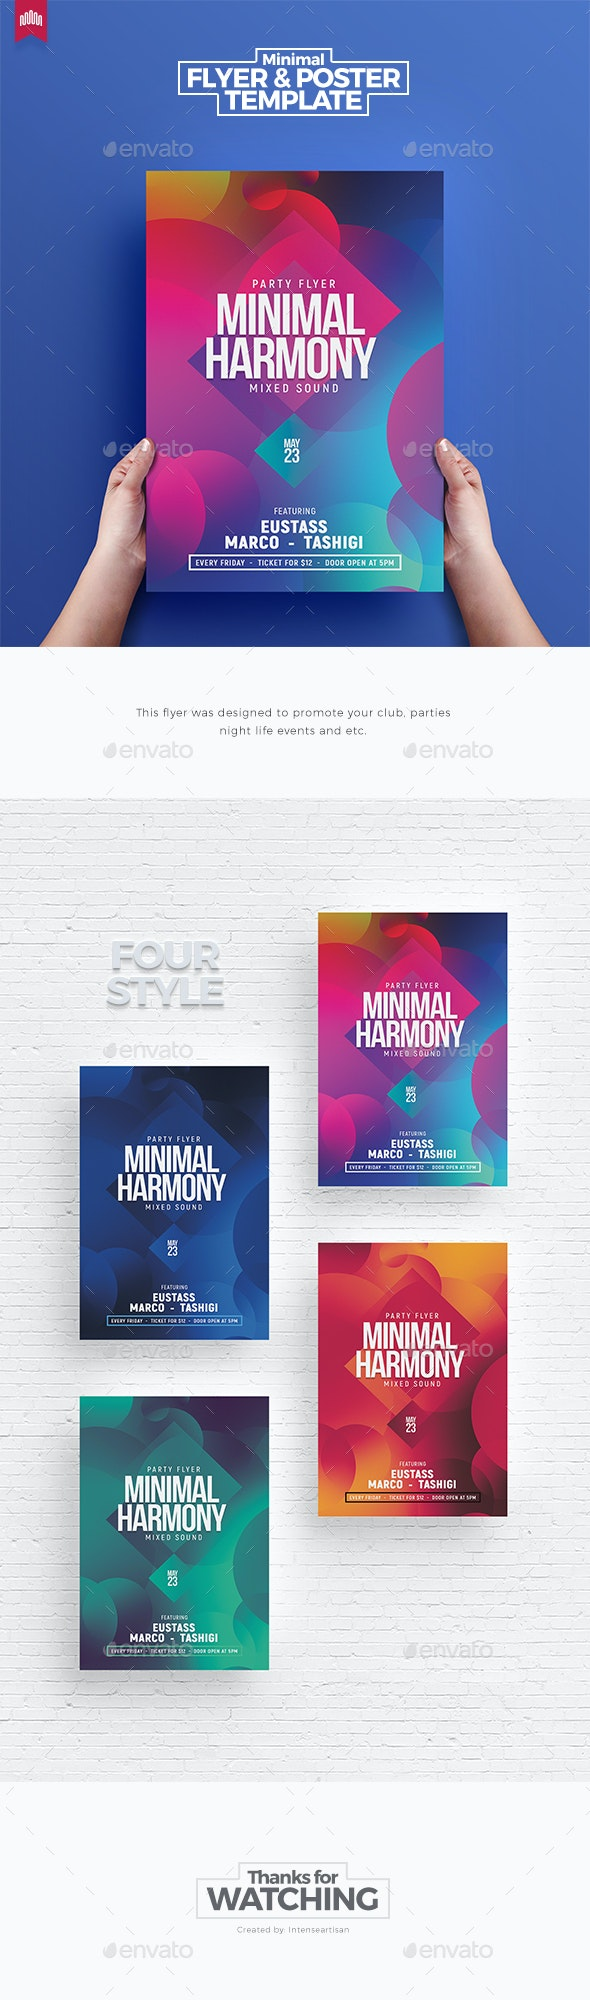 Minimal Harmony - Flyer Template - Clubs & Parties Events